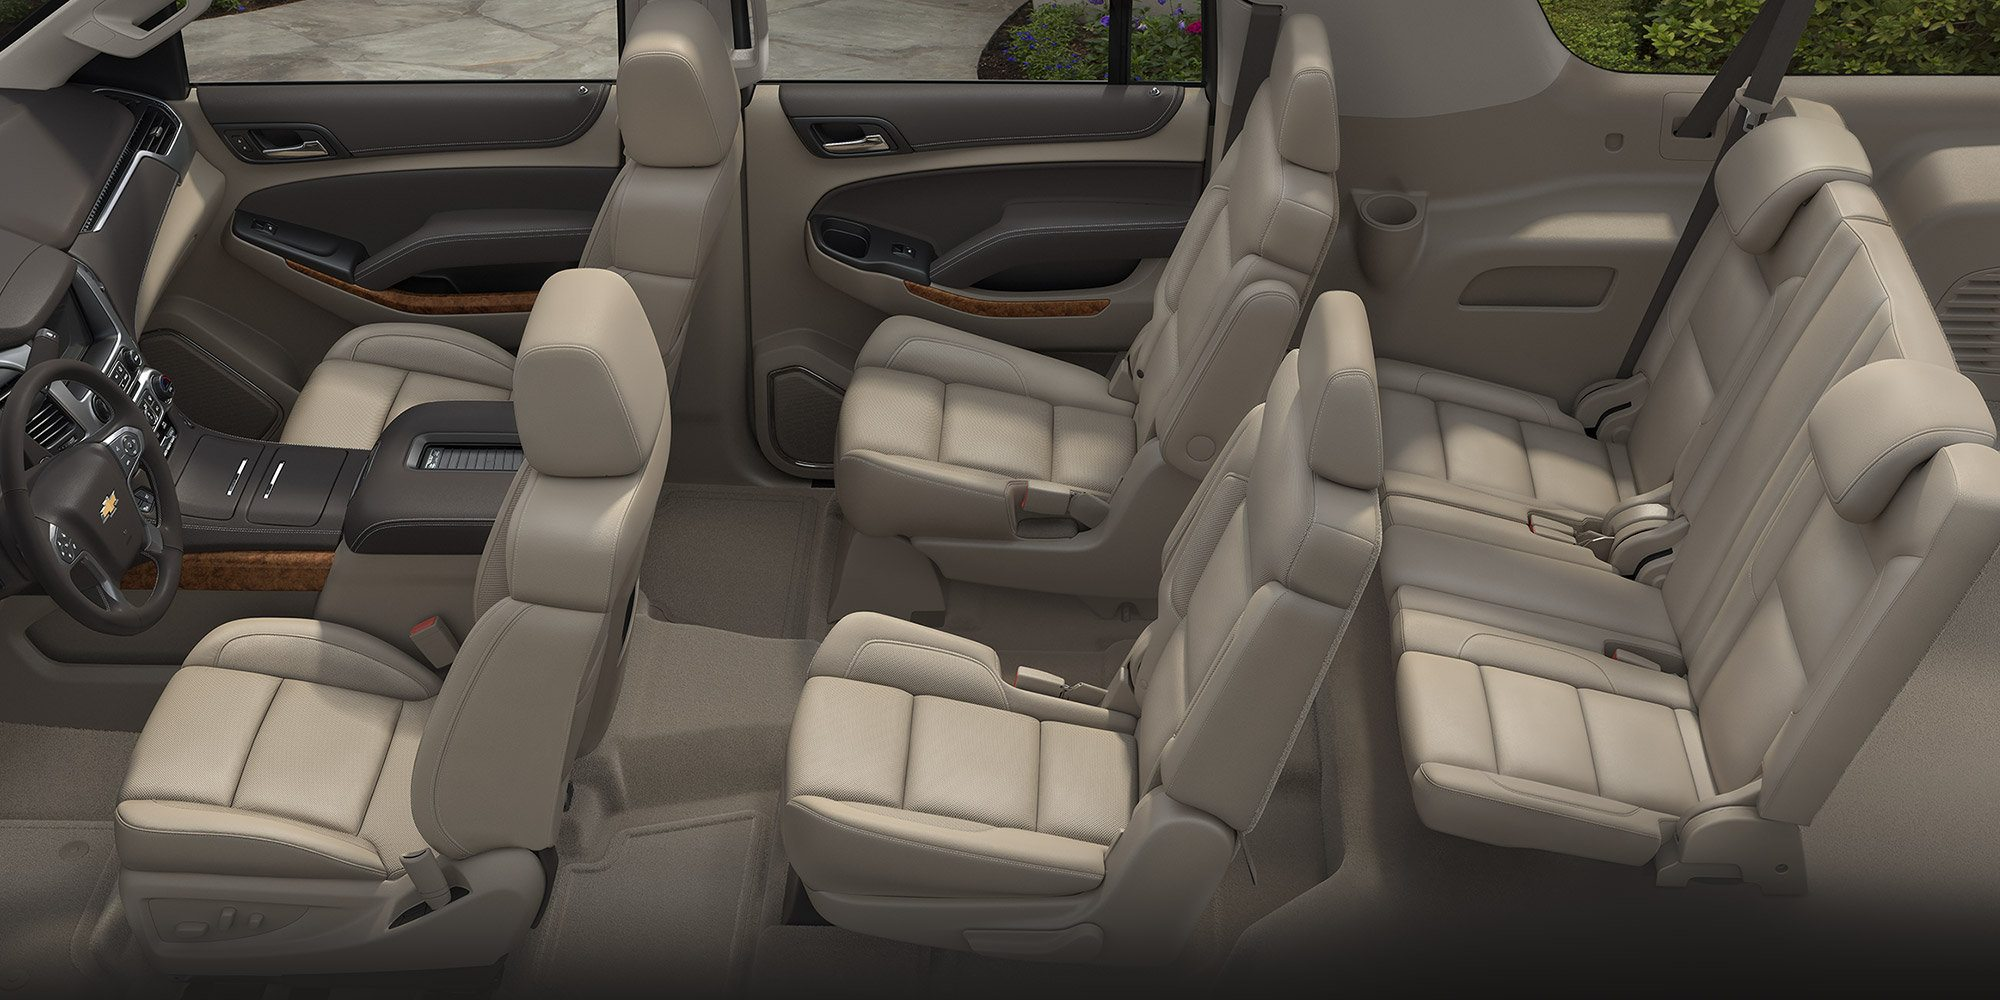 2017 Chevrolet Suburban Seating